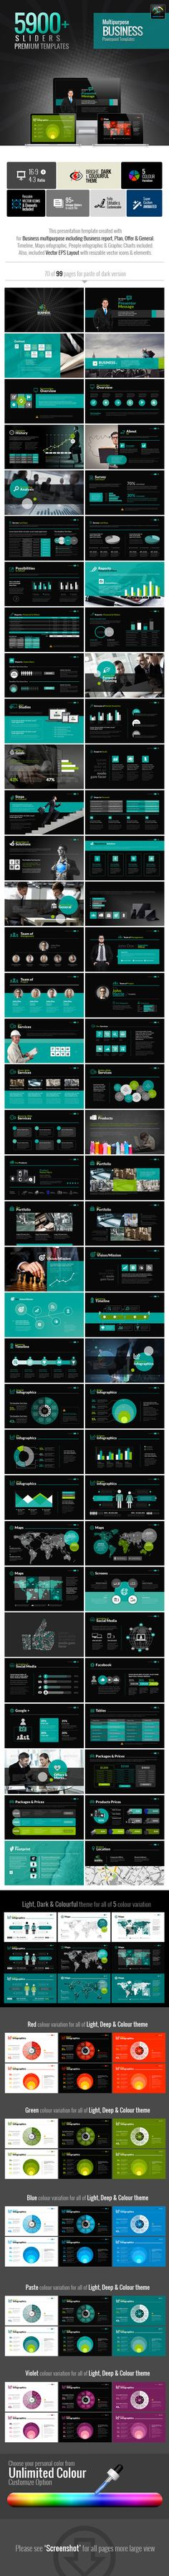 MultiEco Business Template — Powerpoint PPT #clean #creative templates • Available here → https://graphicriver.net/item/multieco-business-template/6436064?ref=pxcr